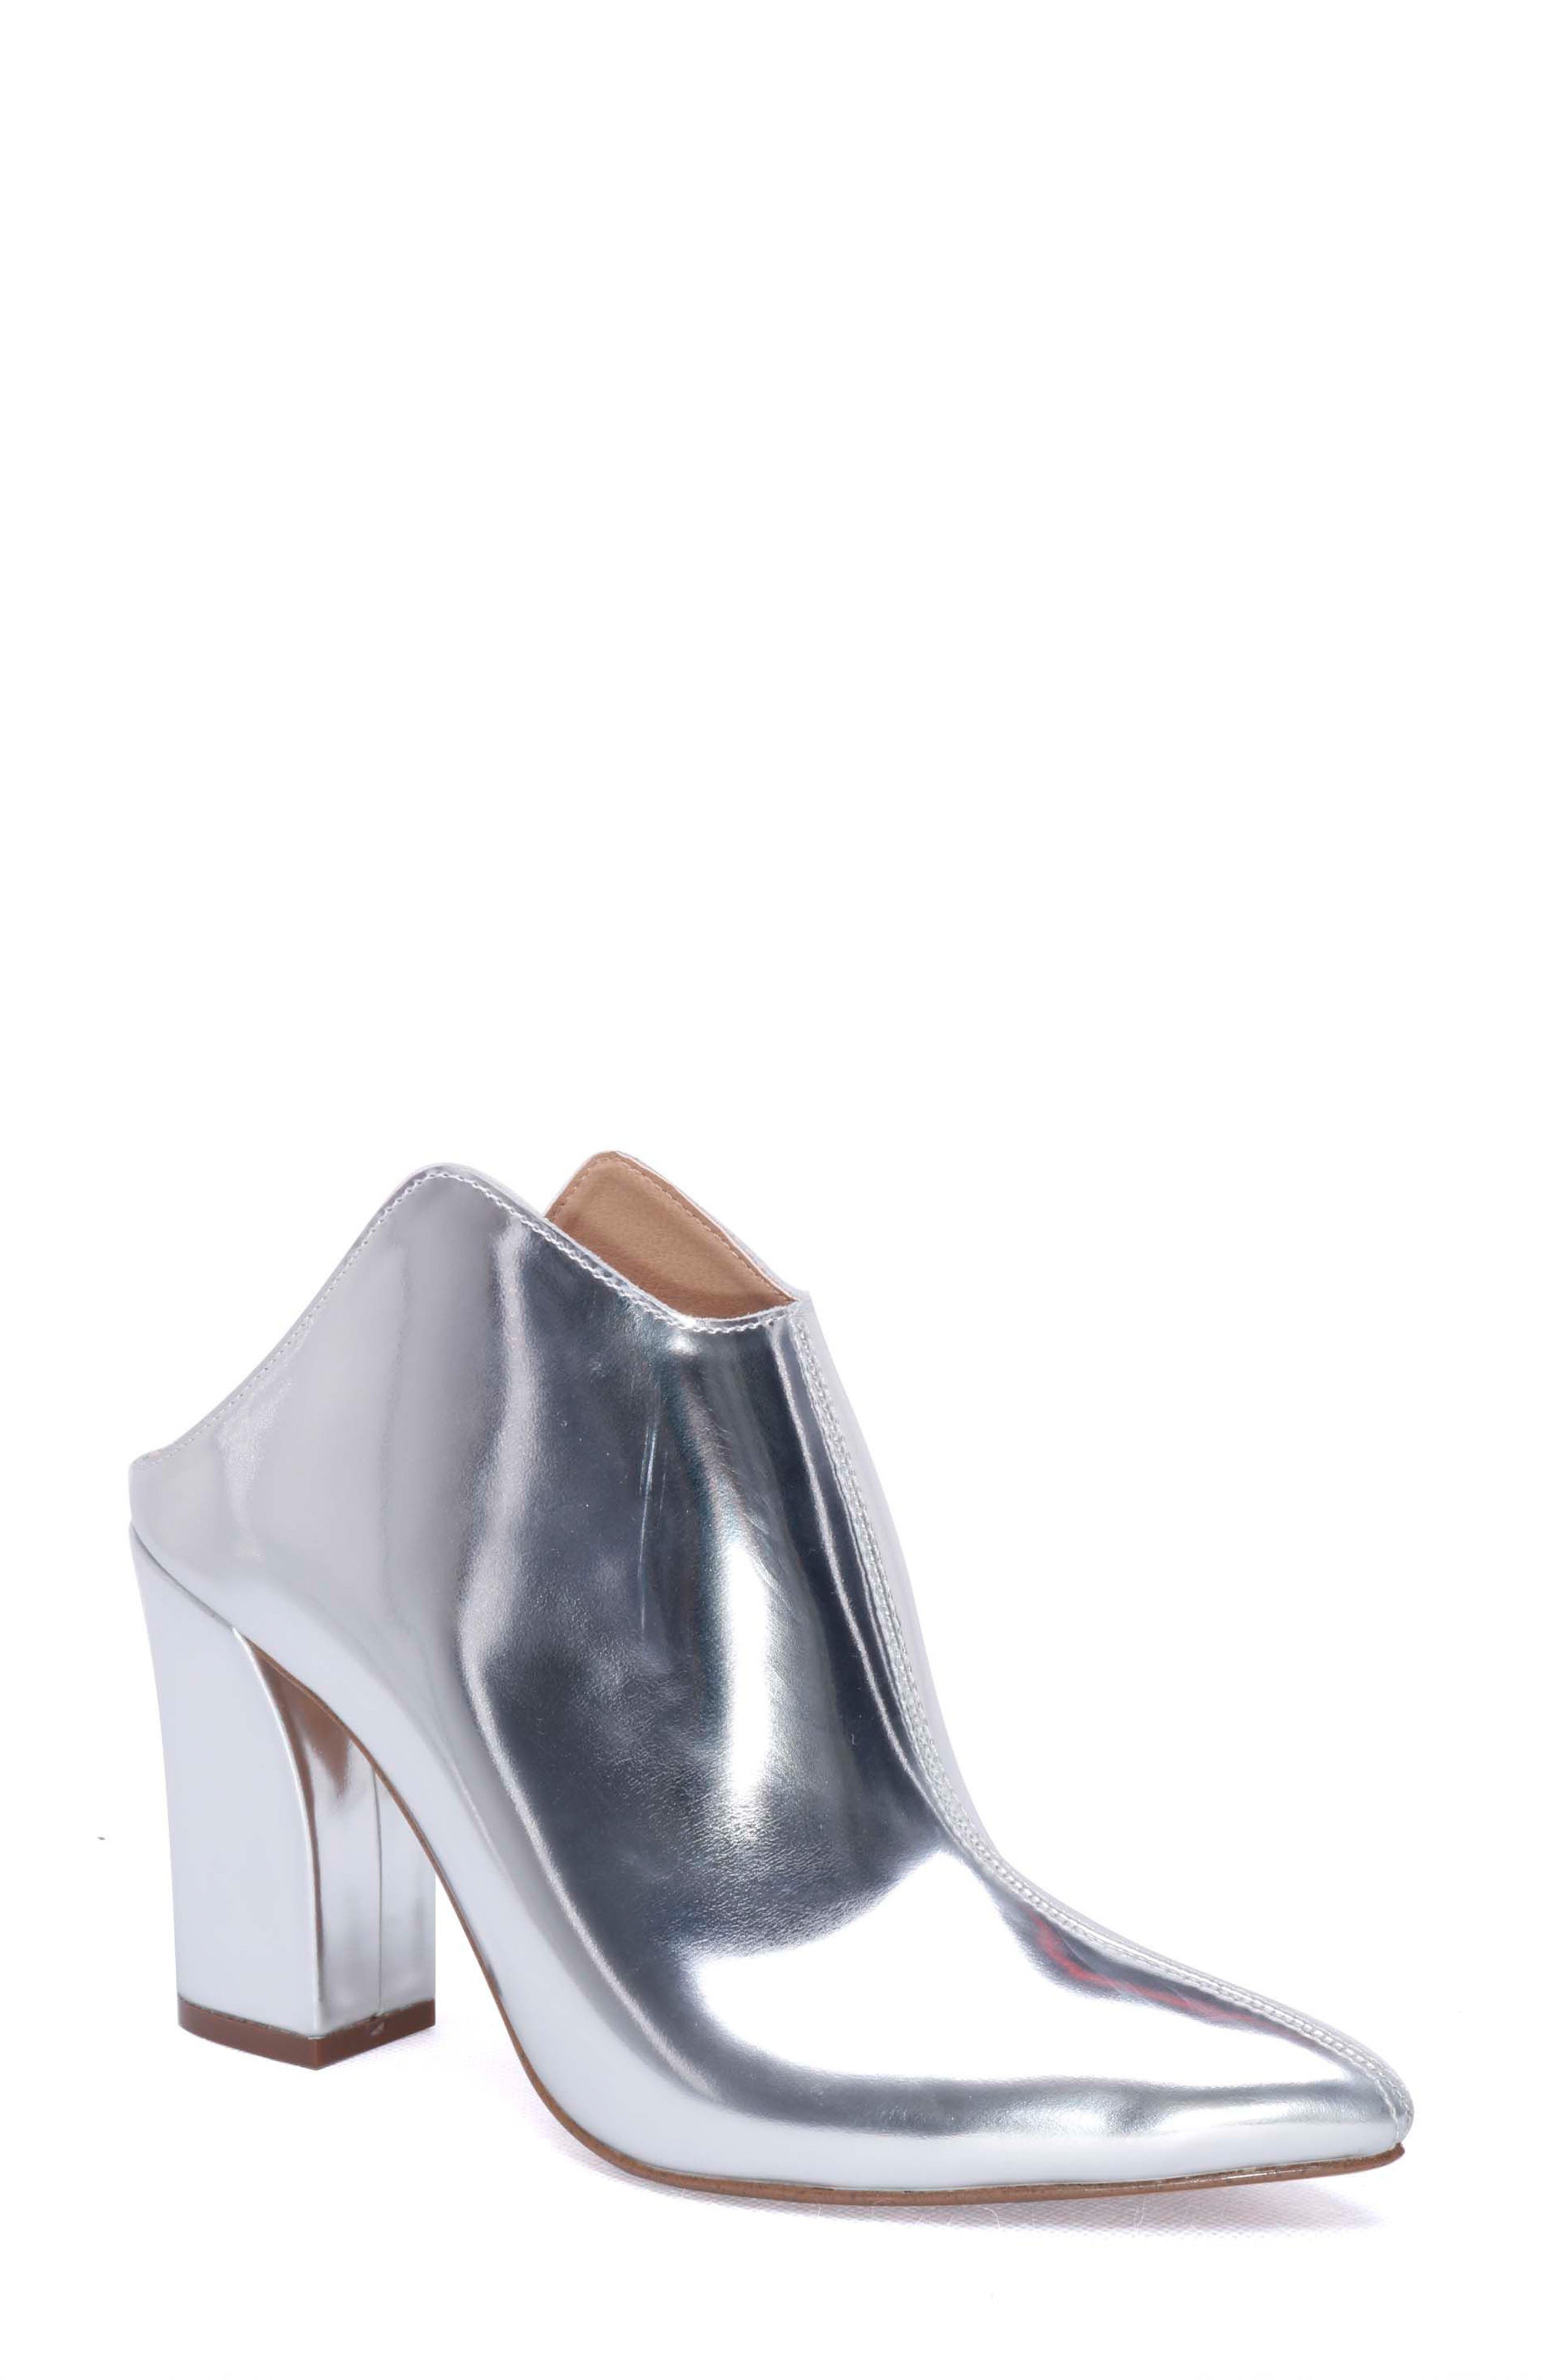 Sydney Pointy Toe Mule,                         Main,                         color, 040